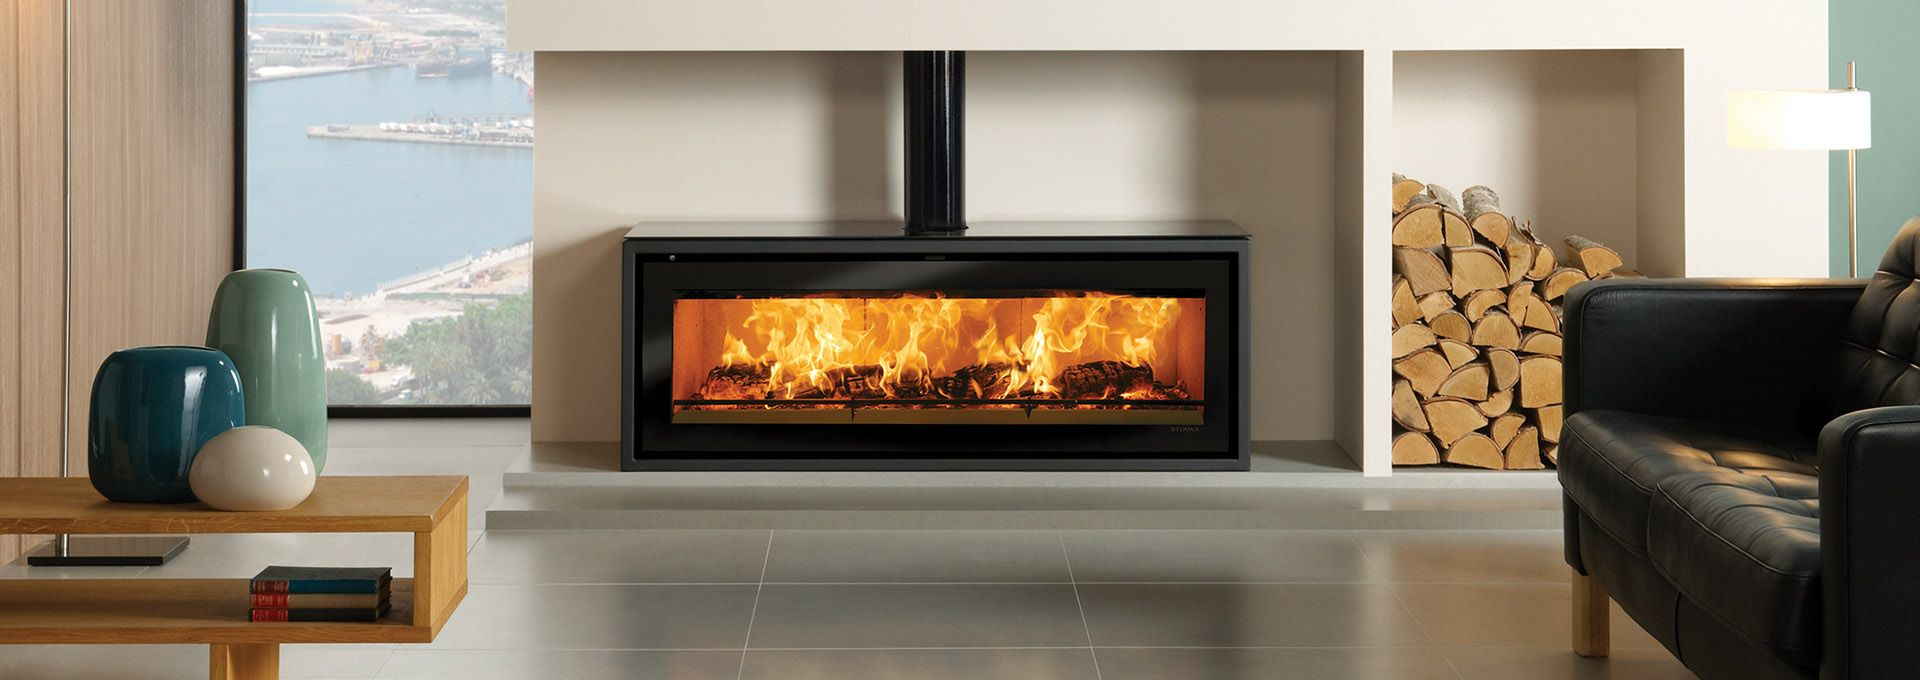 Linear Wood Freestanding Stovax Studio Stv3f Regency Fireplace